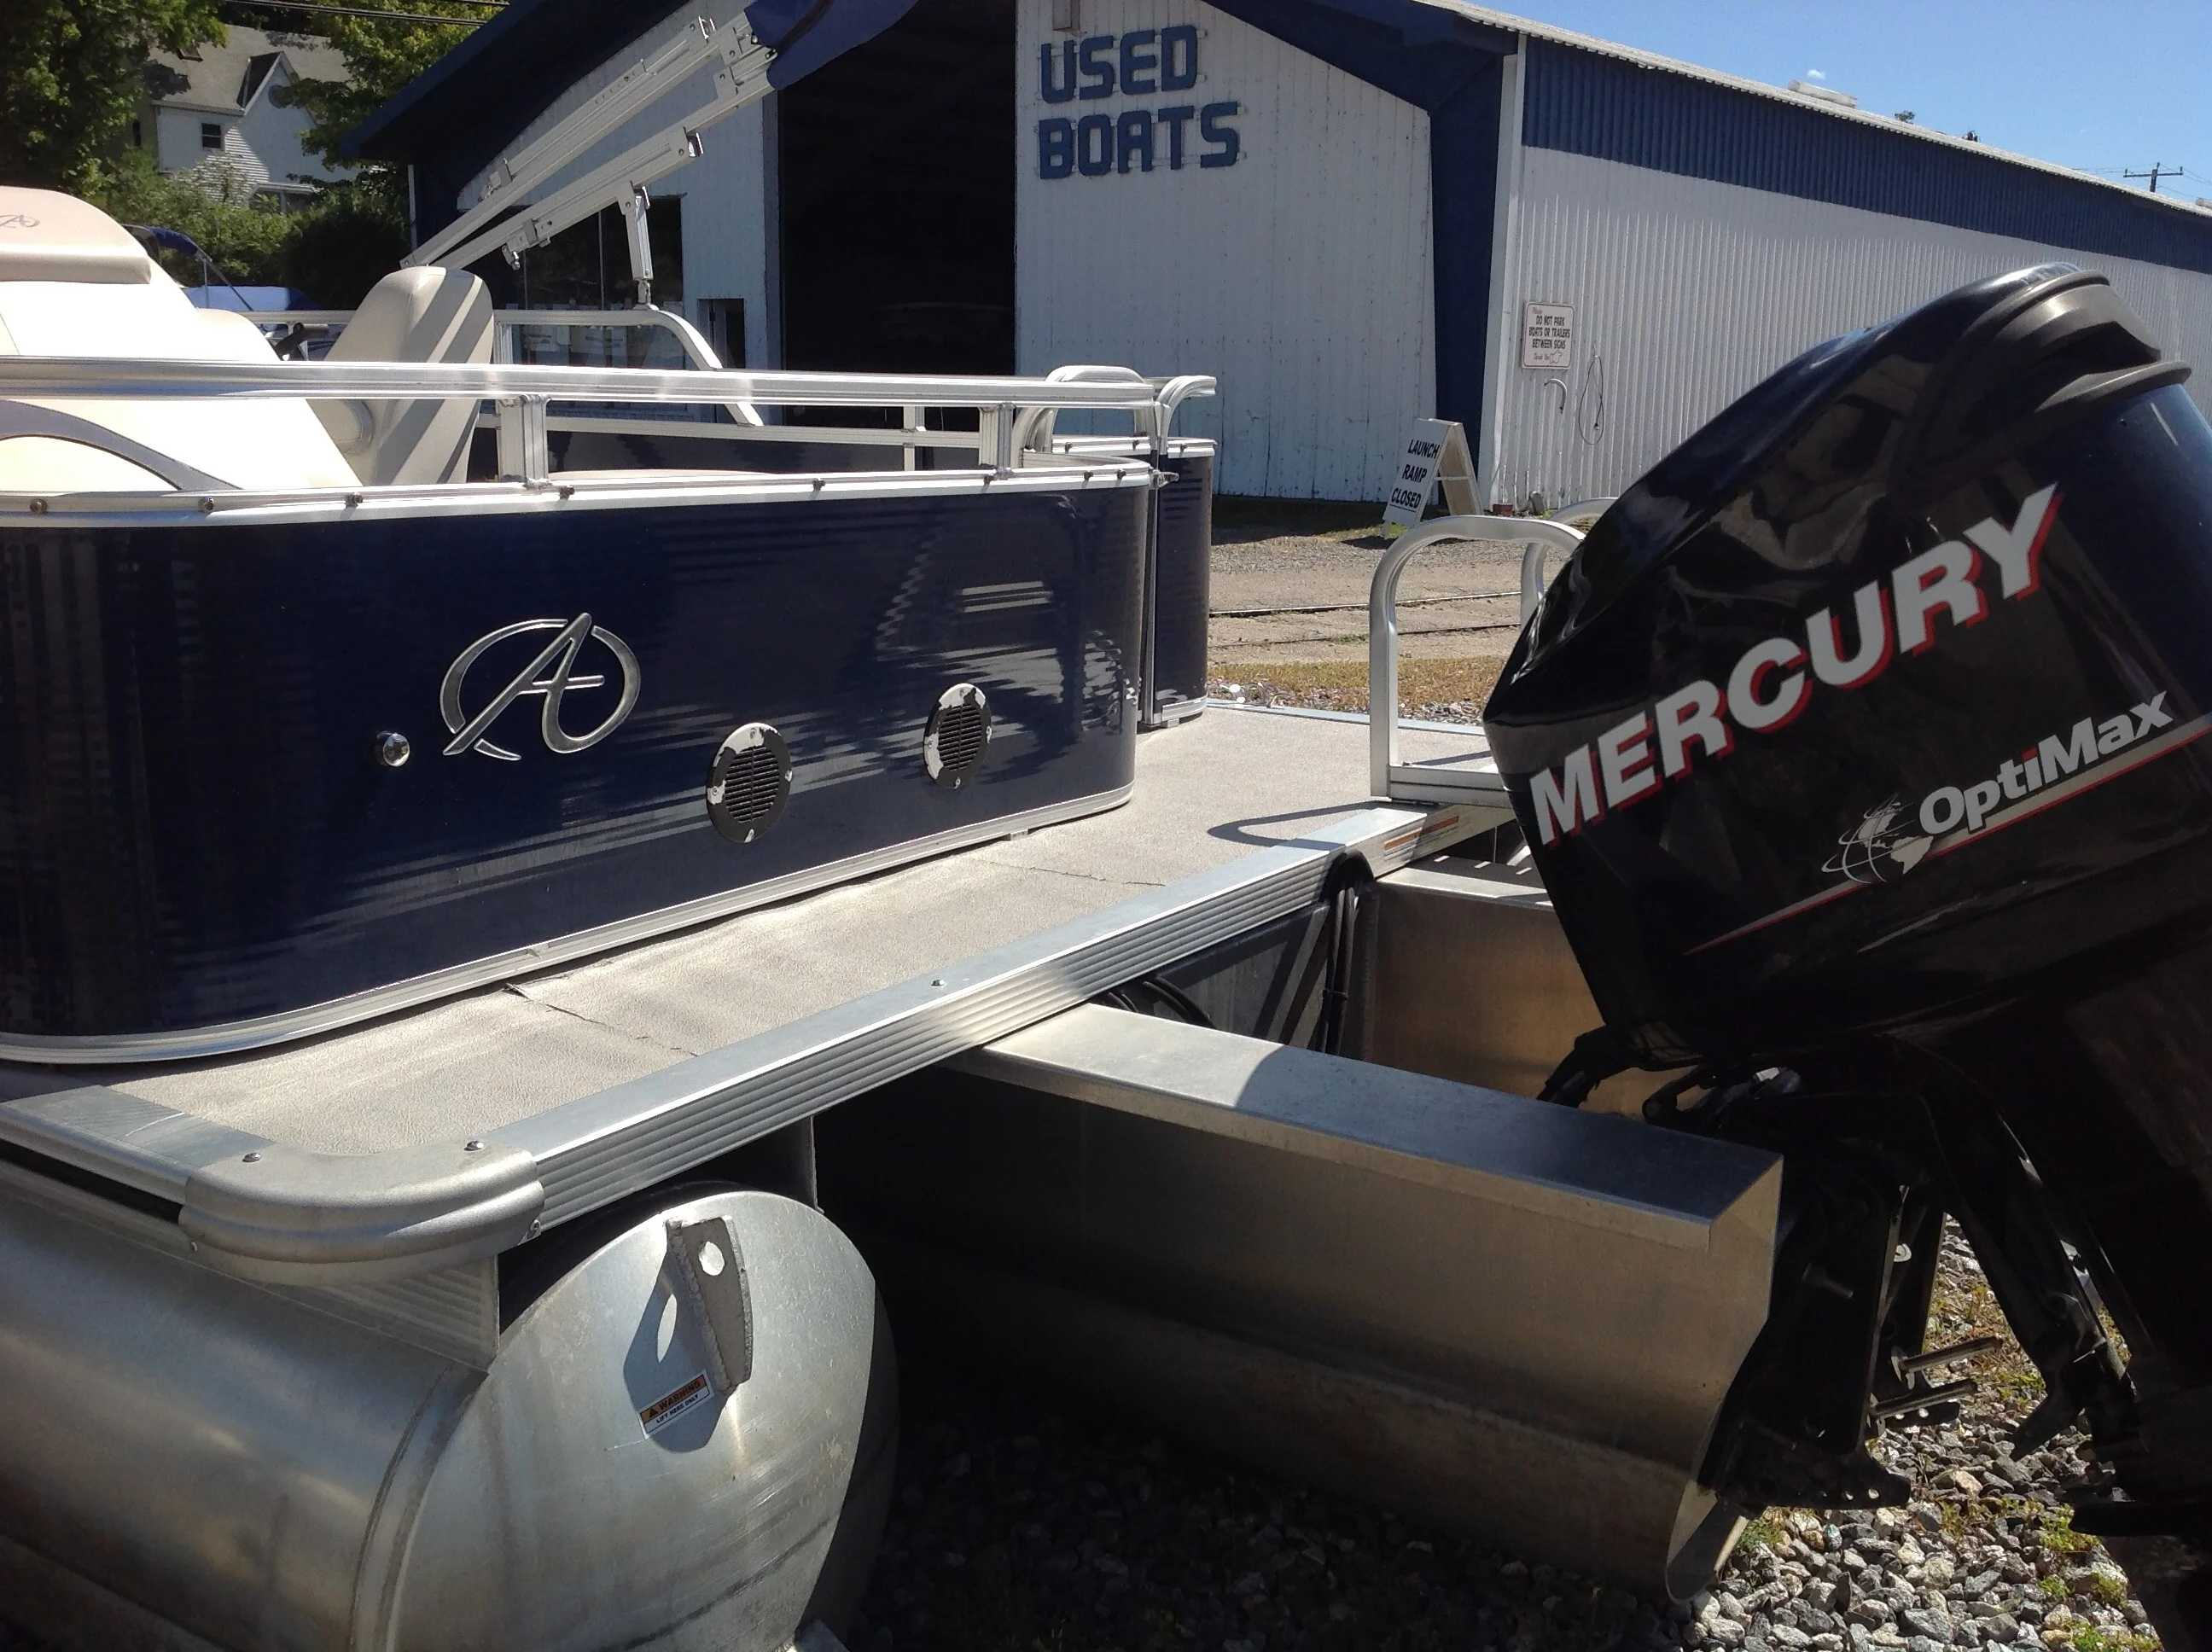 2012 Avalon boat for sale, model of the boat is Catalina Drl 2485 & Image # 13 of 14